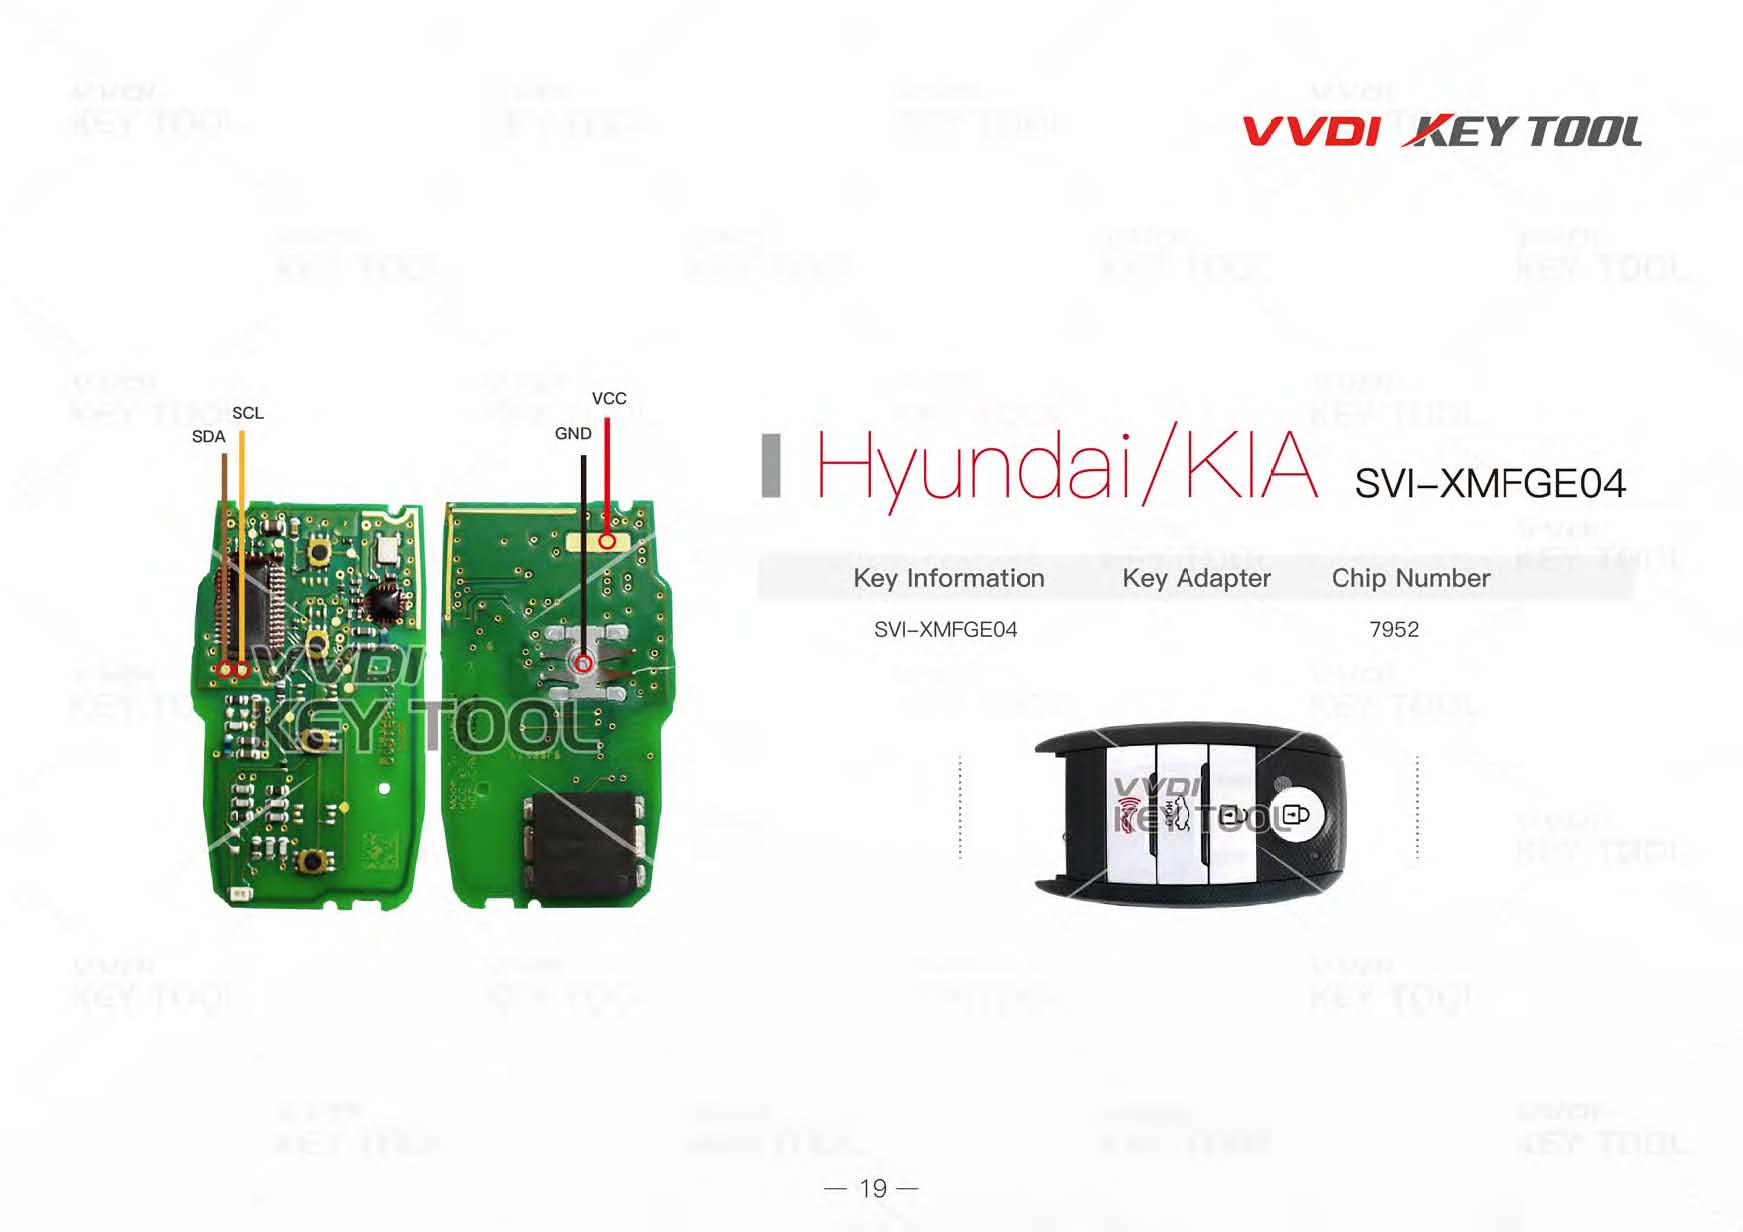 vvdi-key-tool-renew-diagram-19